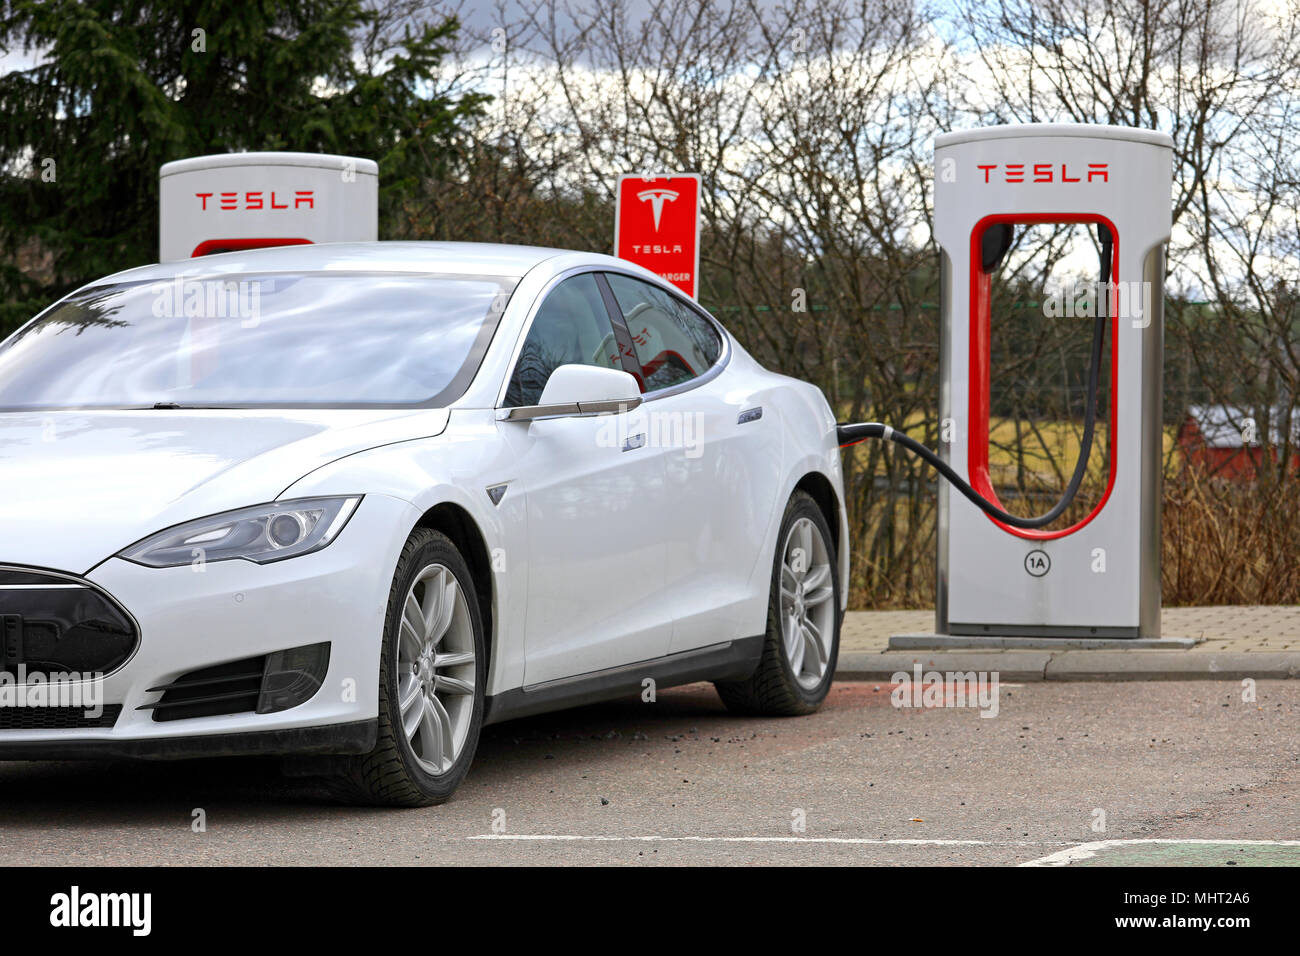 White Tesla Model S electric car connected and charging at Supercharger station on a day of spring in Paimio, Finland - April 28, 2018. - Stock Image